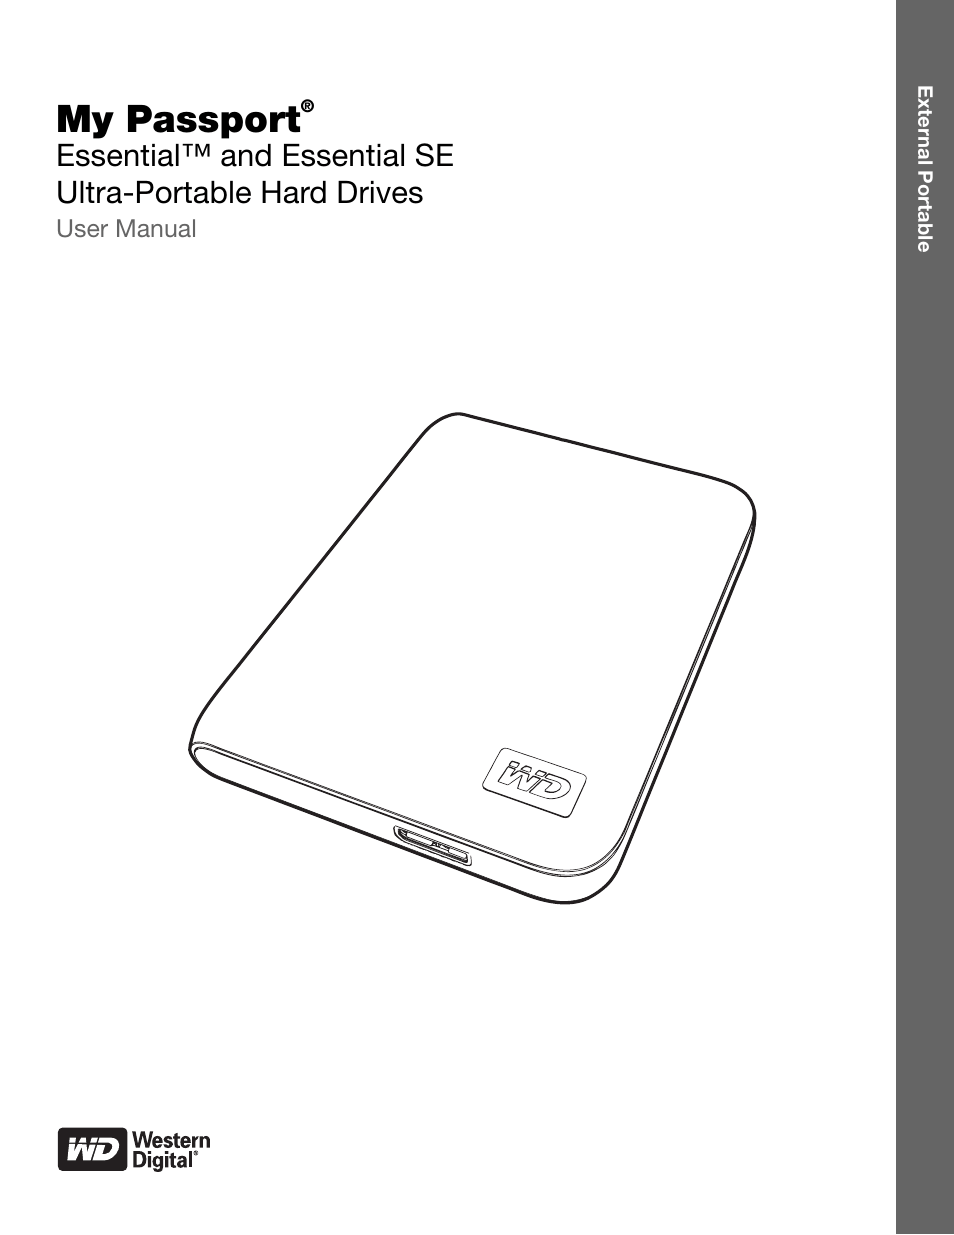 Western Digital My Passport Essential SE User Manual User